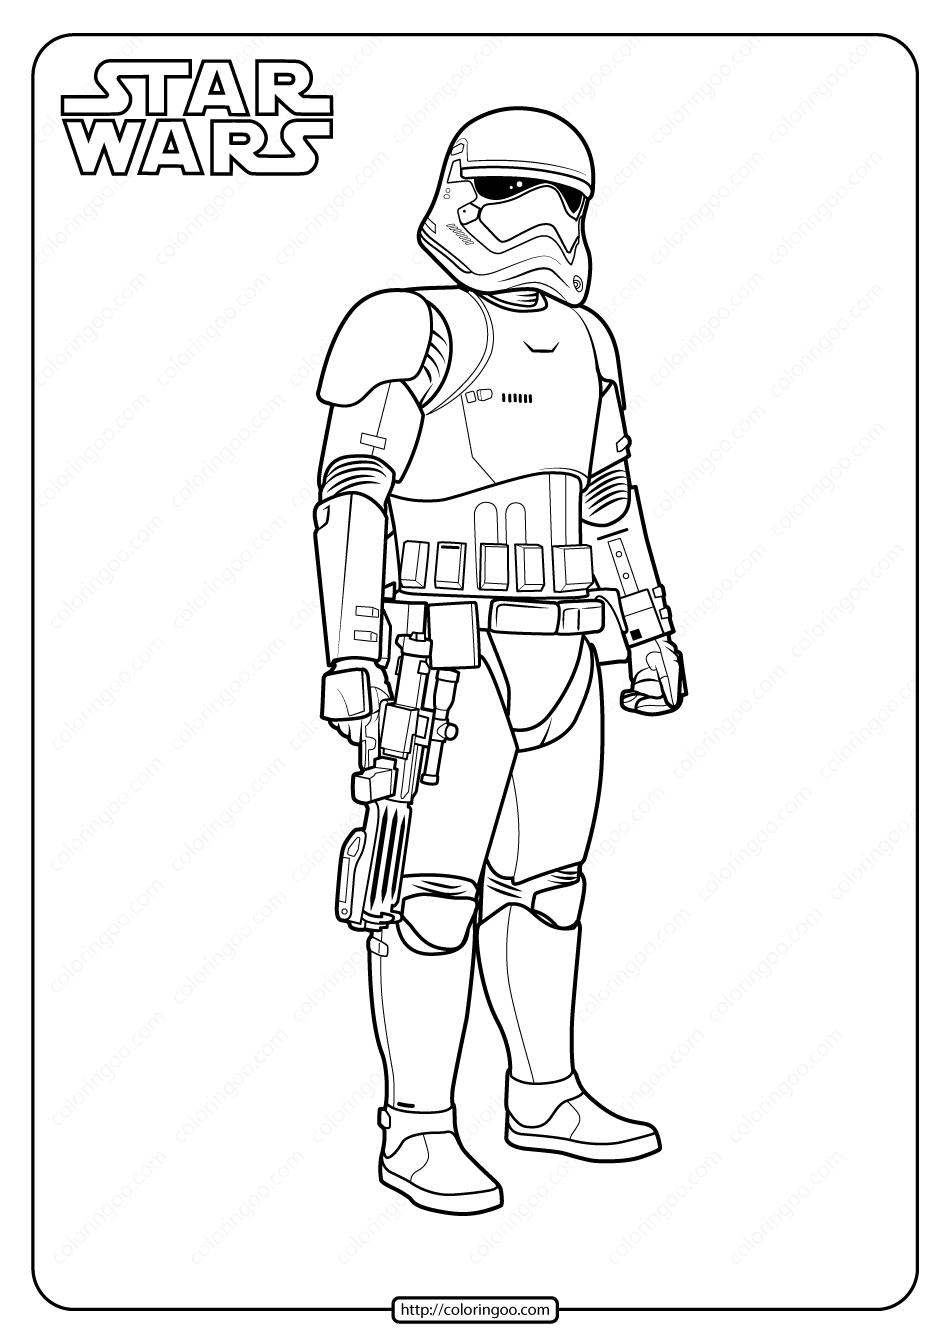 Printable Star Wars Stormtrooper Coloring Pages Star Wars Coloring Book Star Wars Coloring Sheet Star Coloring Pages